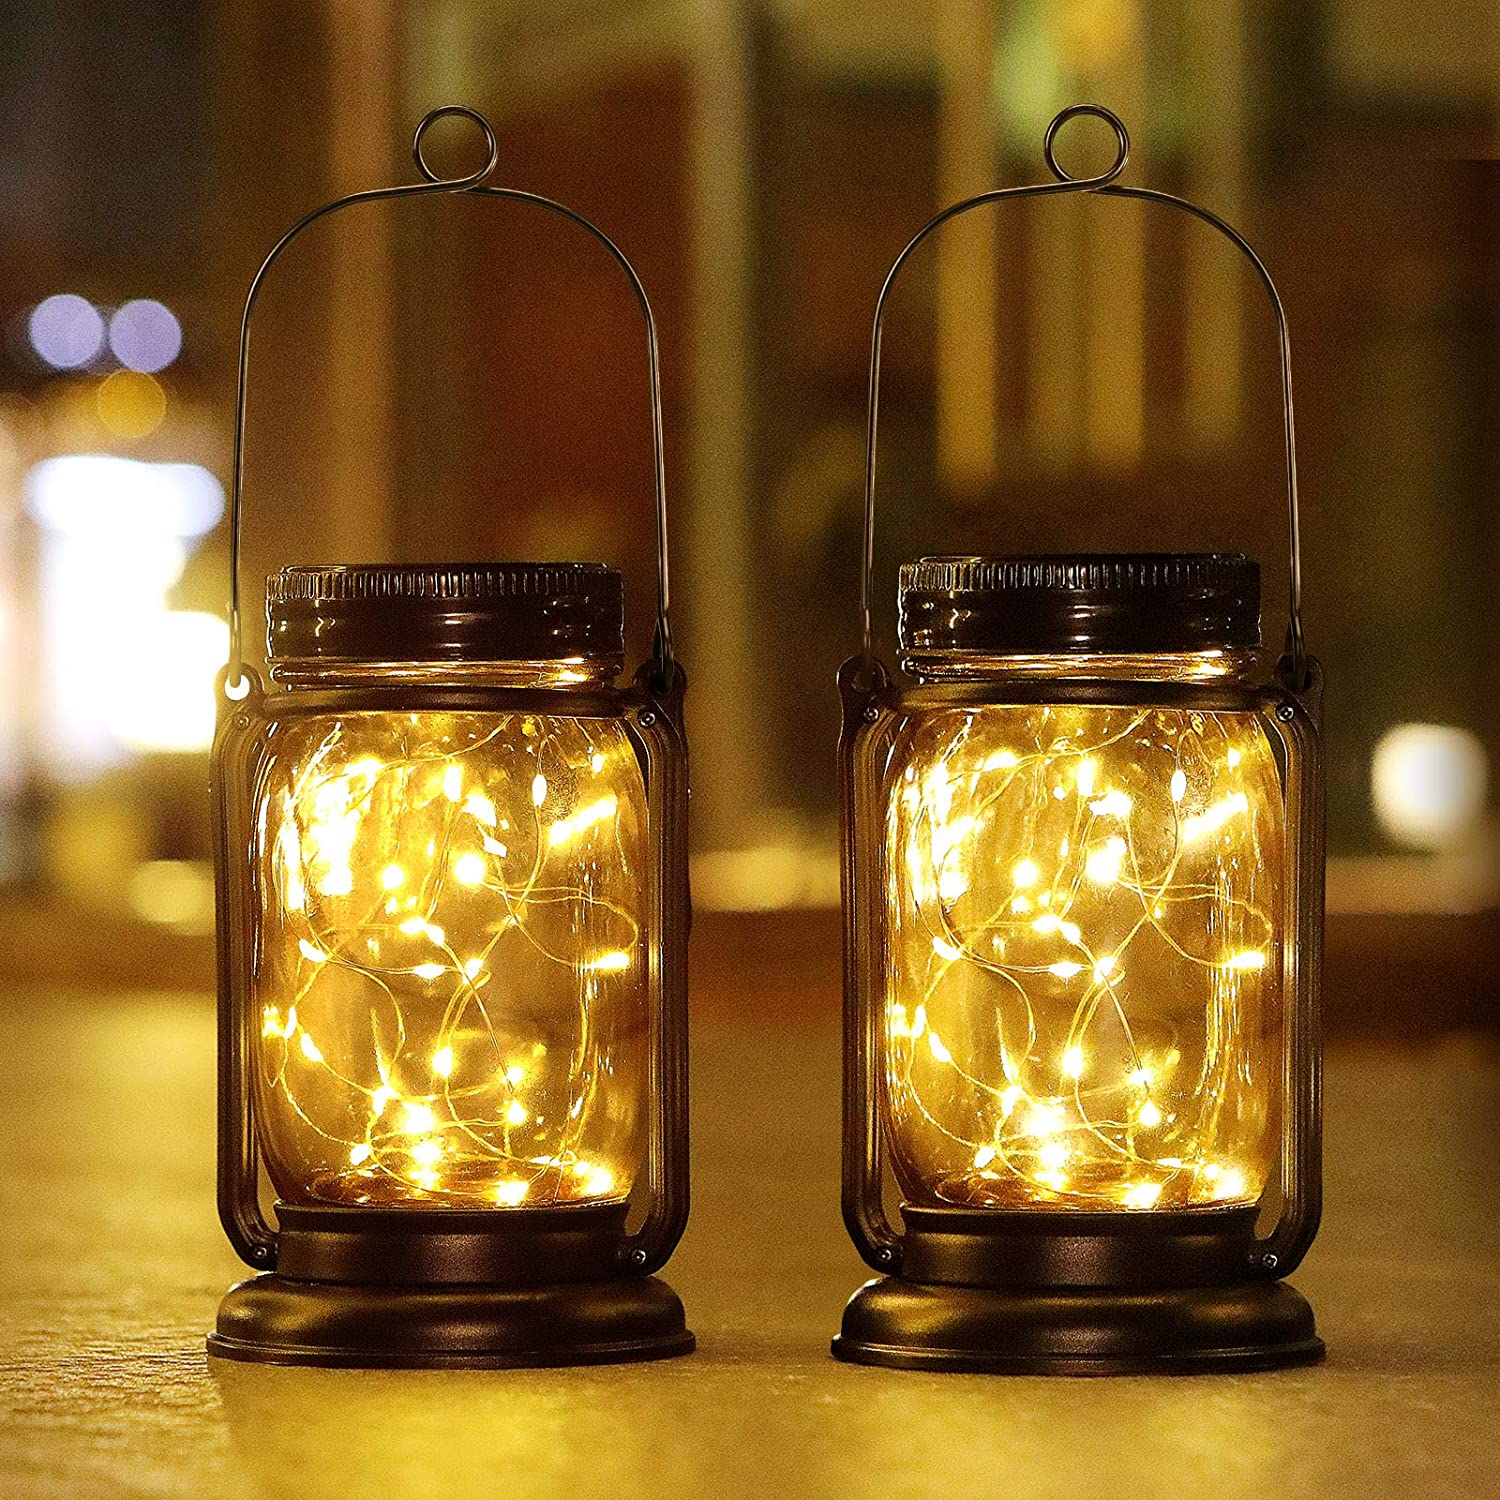 Solar Lights Outdoor Decorative, E-Kong 2 Pack Hanging Solar Garden Lantern Mason Jar Lights with 30 Led String Lights, Retro Design for Patio Yard Balcony Decor - Waterproof Jars and Lids Included